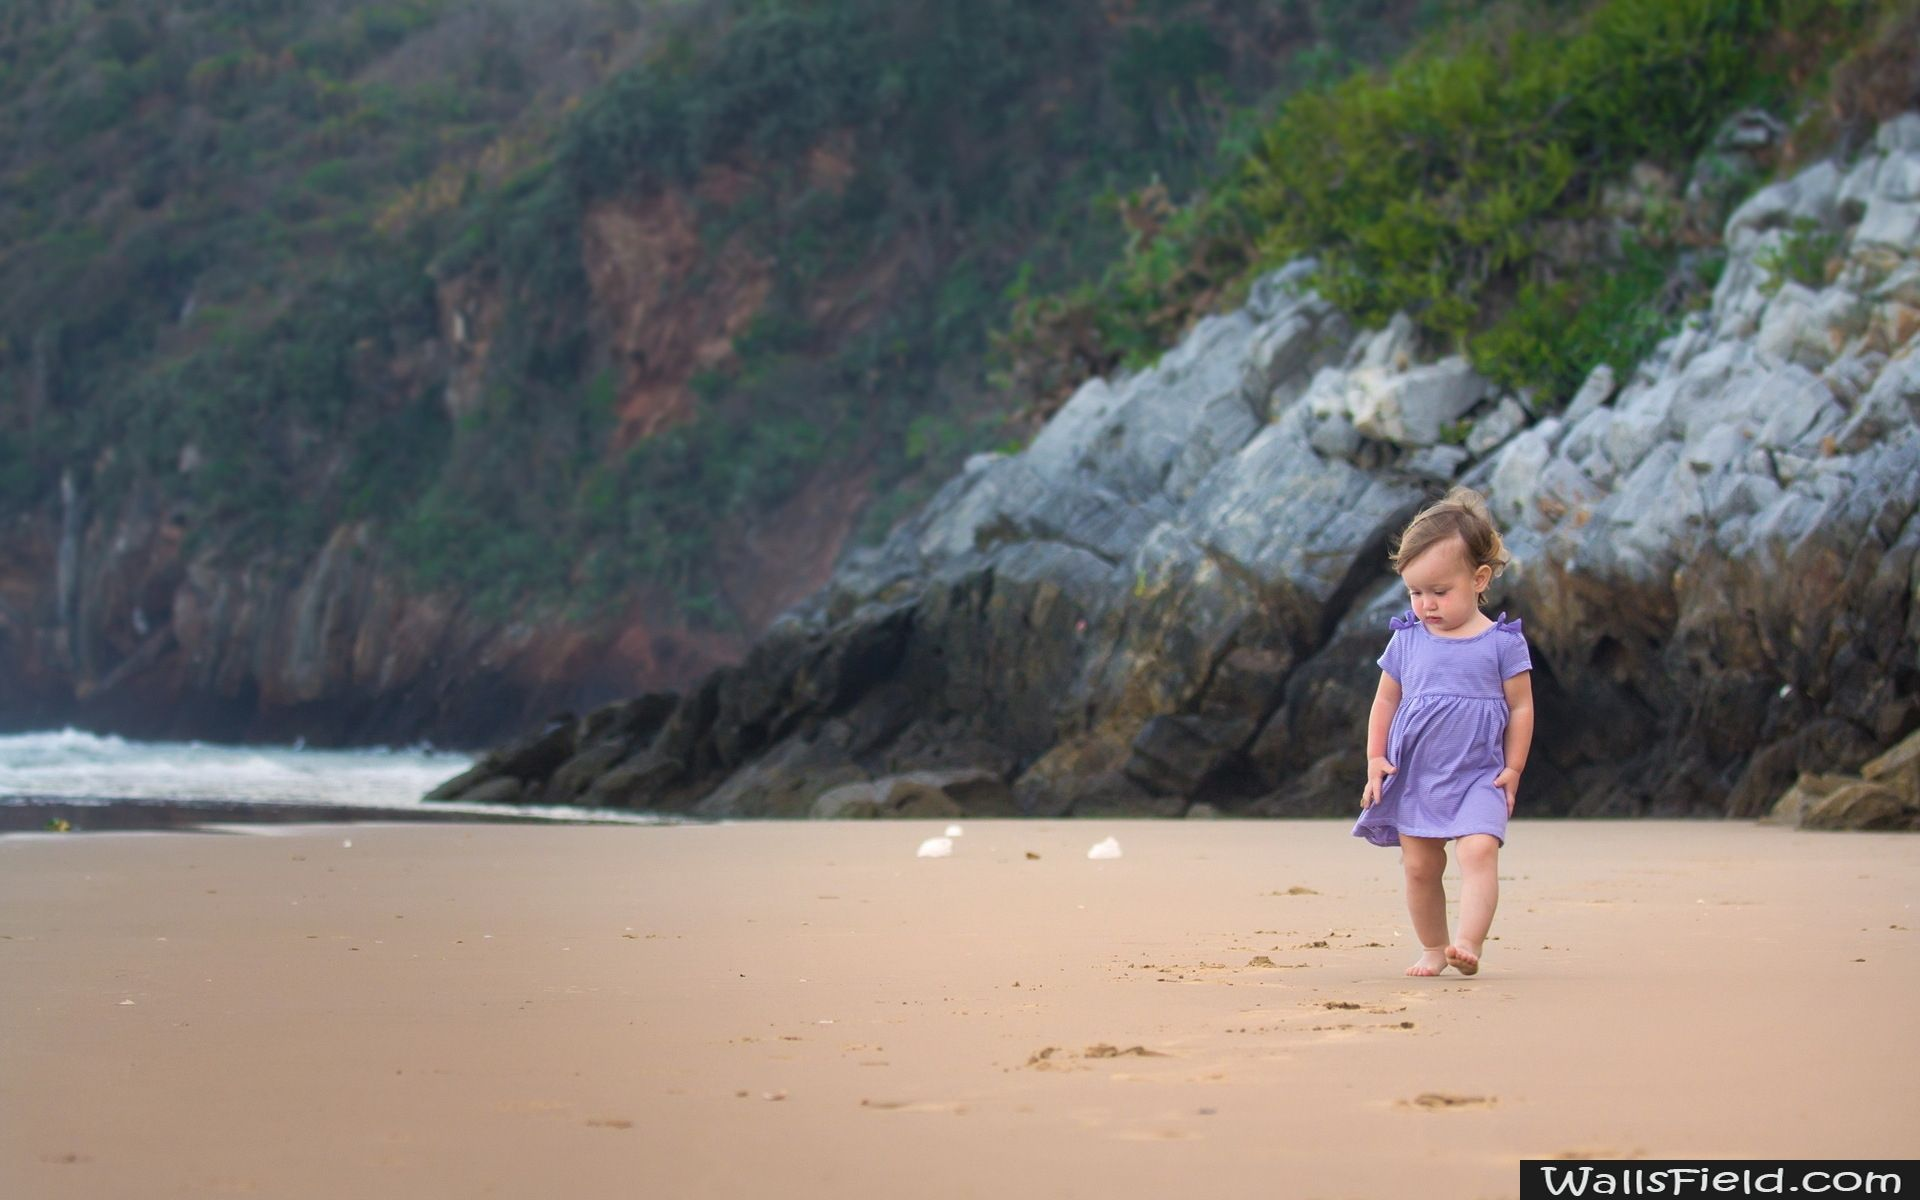 Alone Baby in Beach